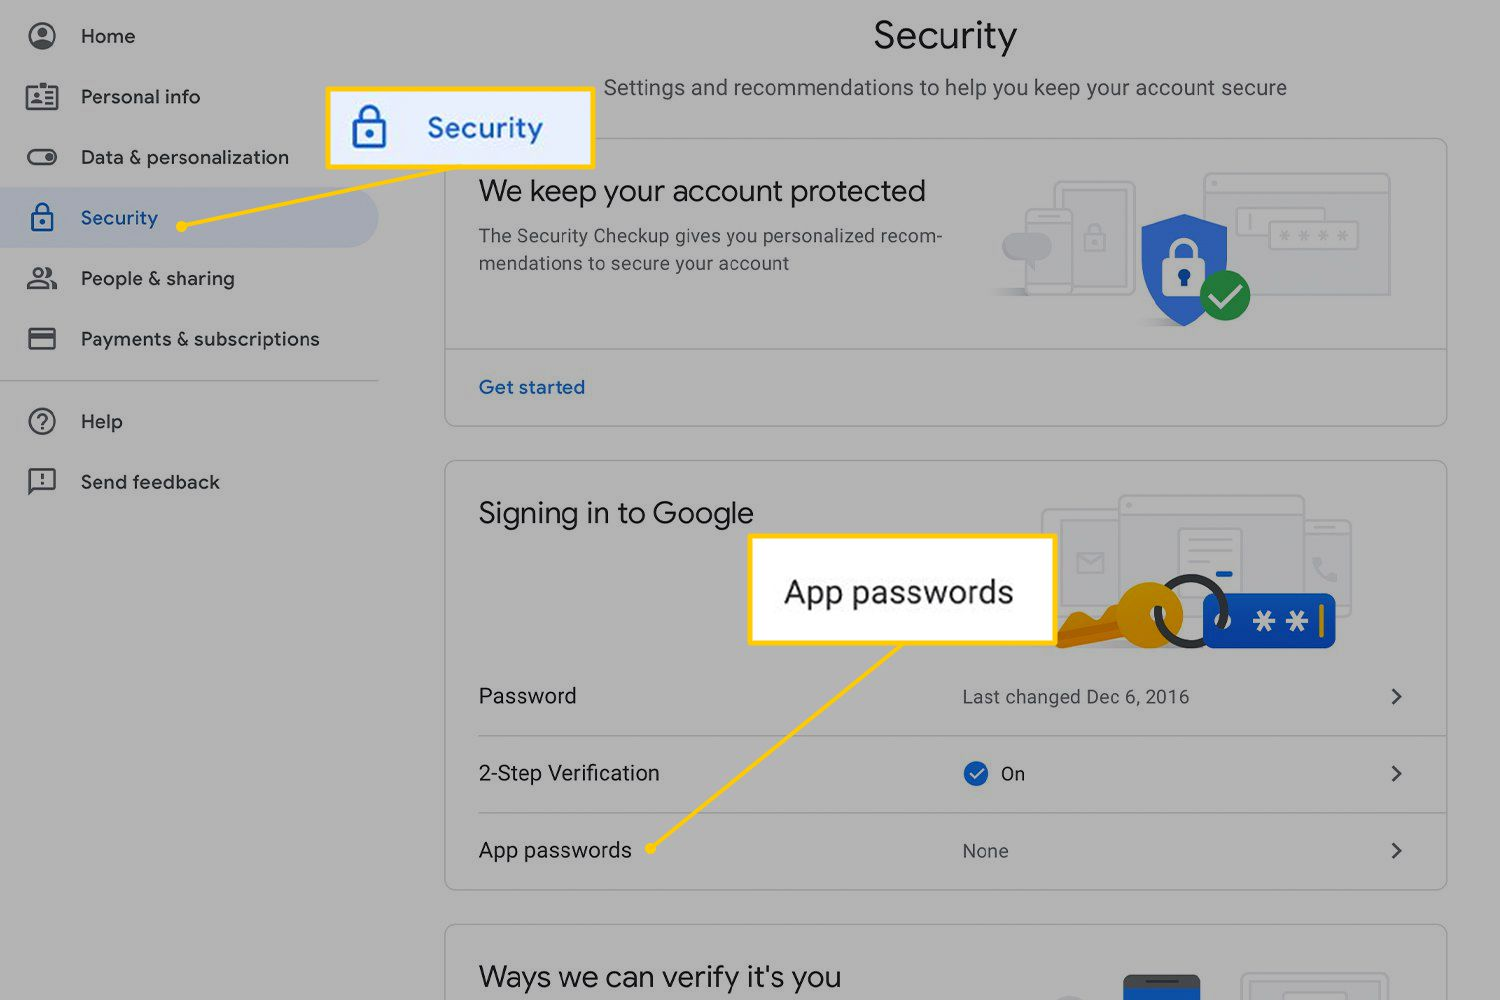 Security tab and App passwords link on Google Account Security page